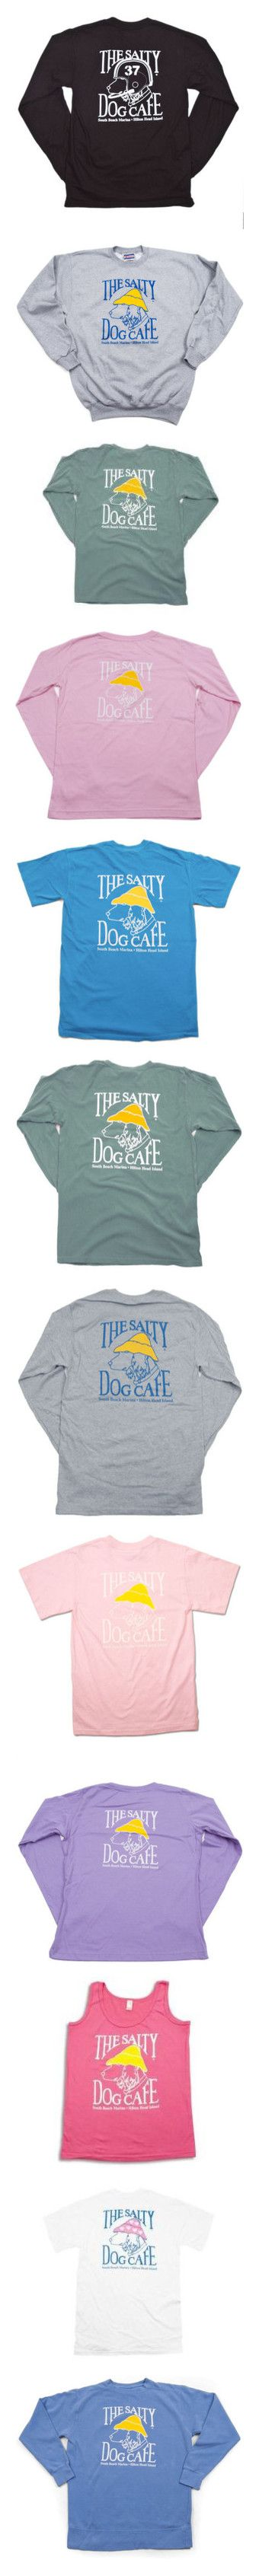 """The Salty Dog Cafe Apparel"" by sperry-topsider ❤ liked on Polyvore featuring long sleeve shirts, sweaters, sweatshirts, shirts, tops, t-shirts, tops/outerwear, tees, basic tees and tank tops"